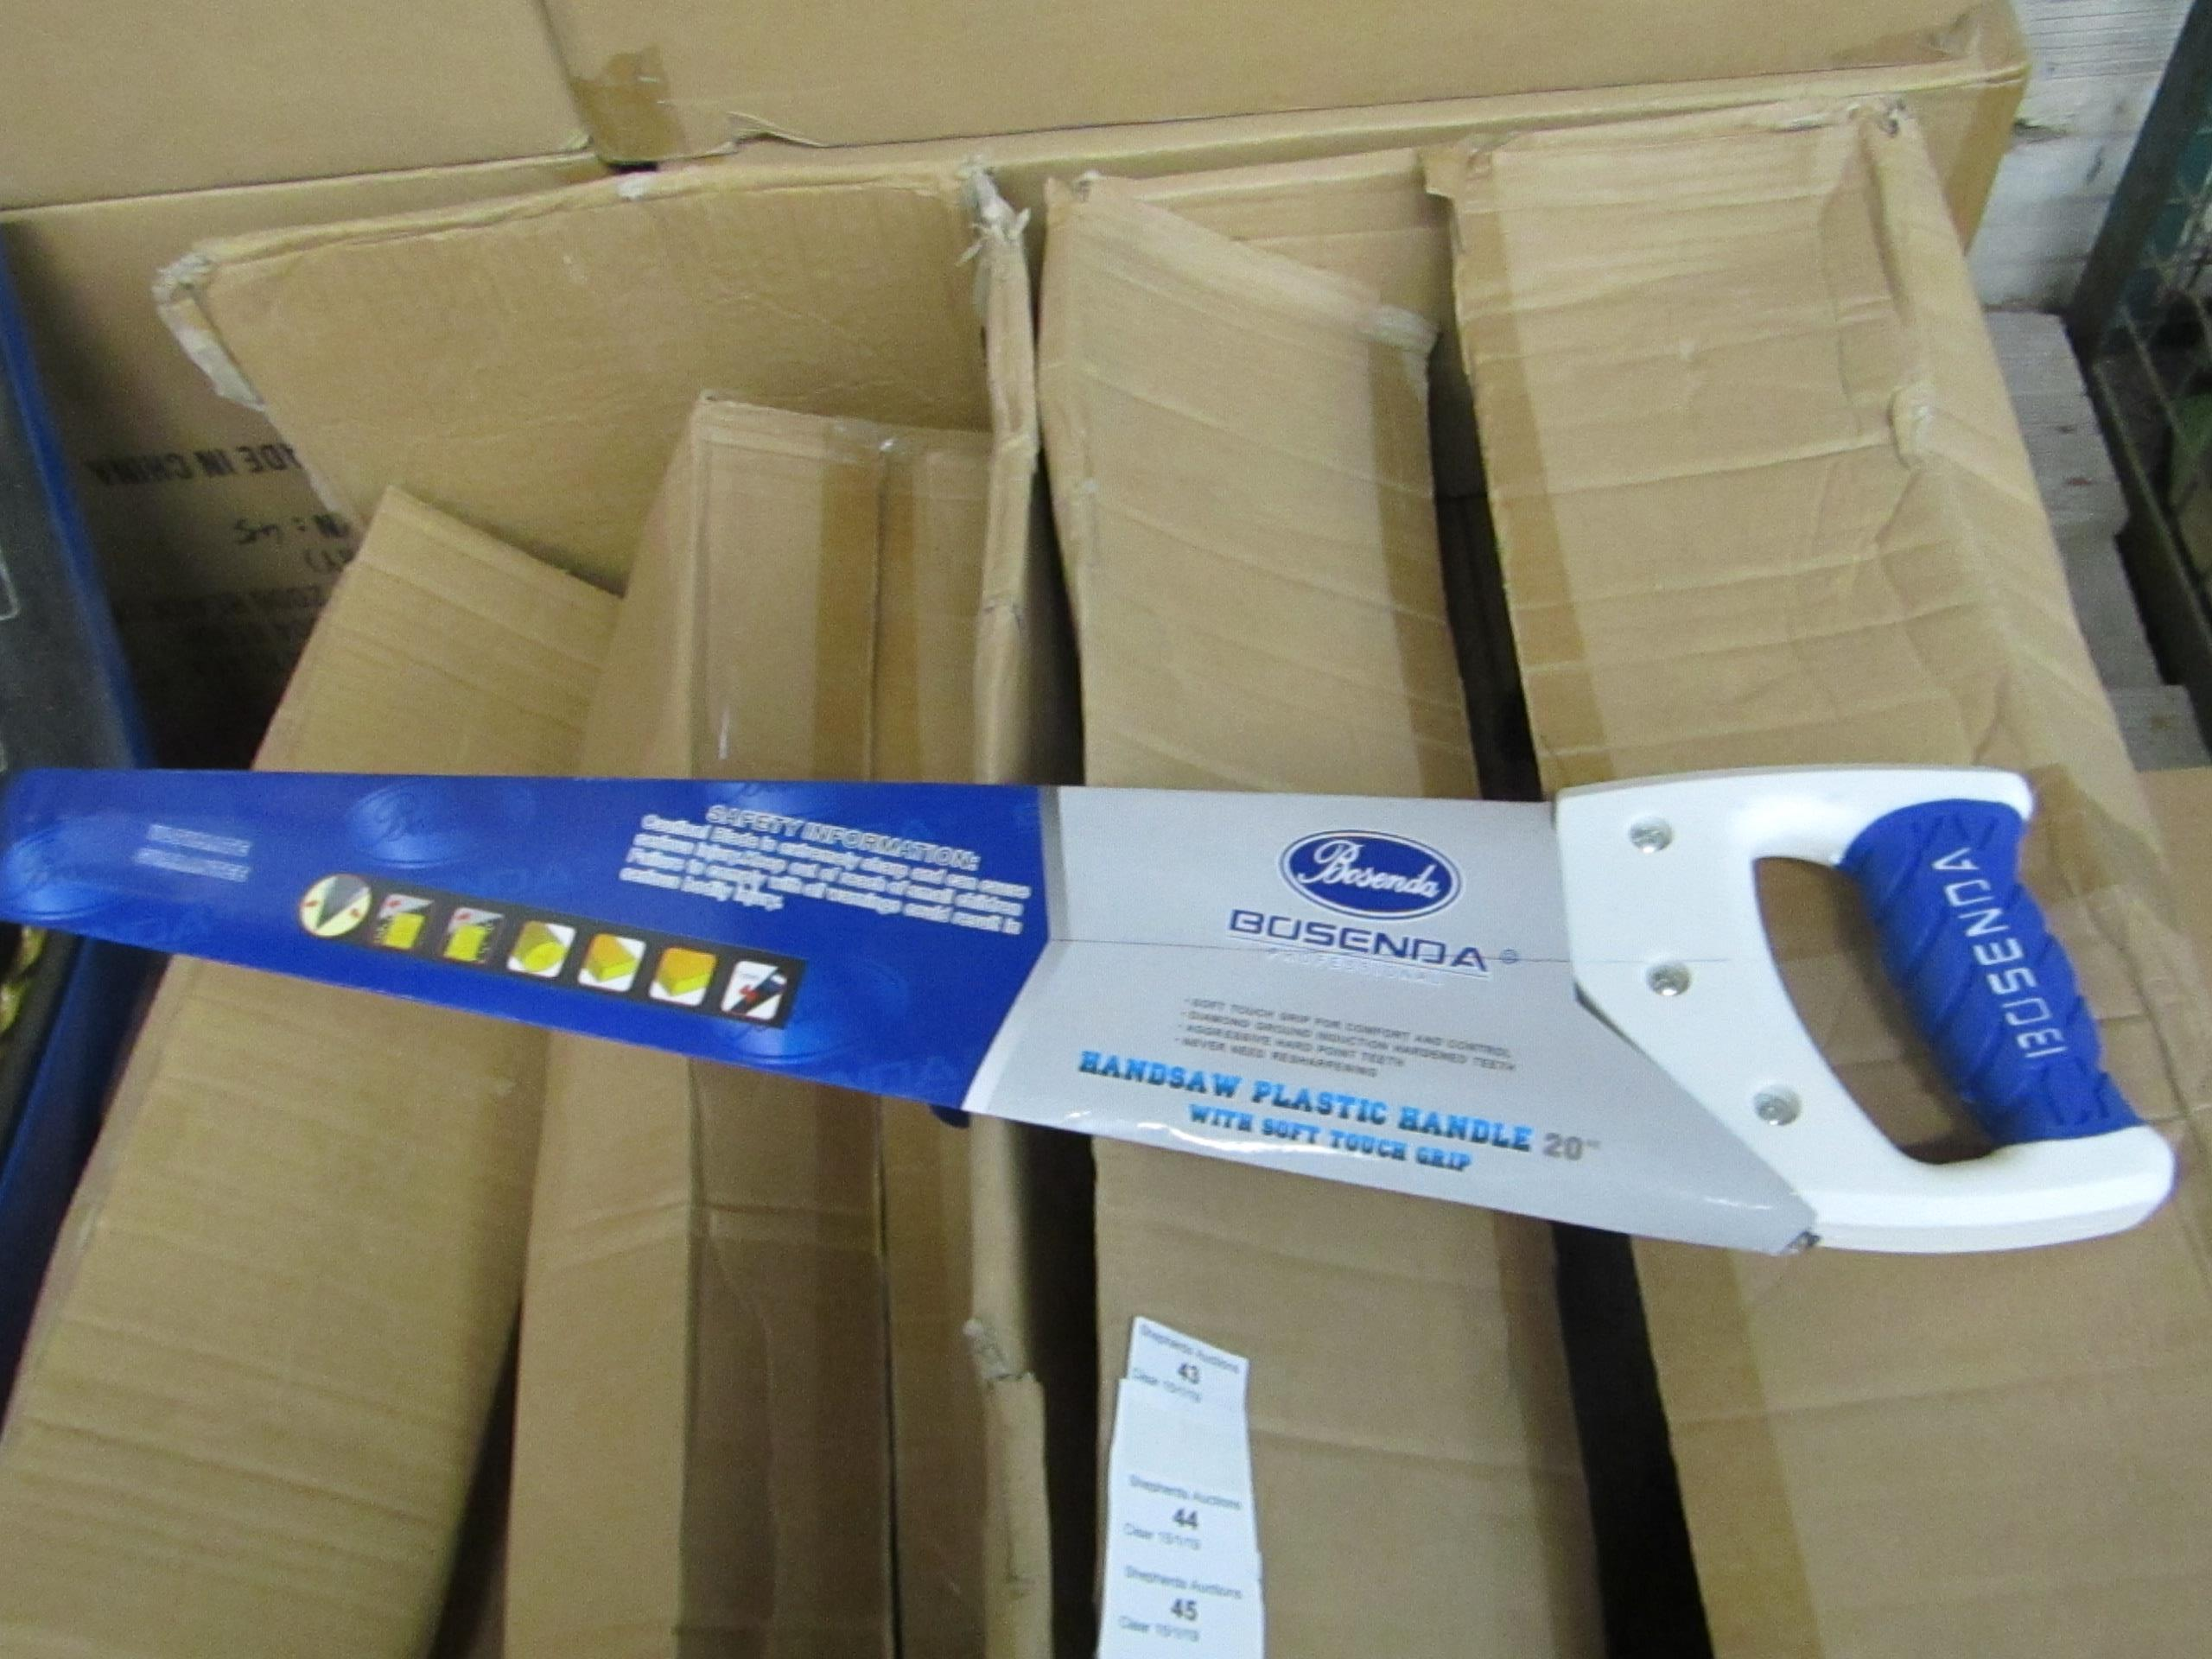 "Lot 46 - Bosenda Professional 20"" Hand saw with Soft touch grip handle, new."